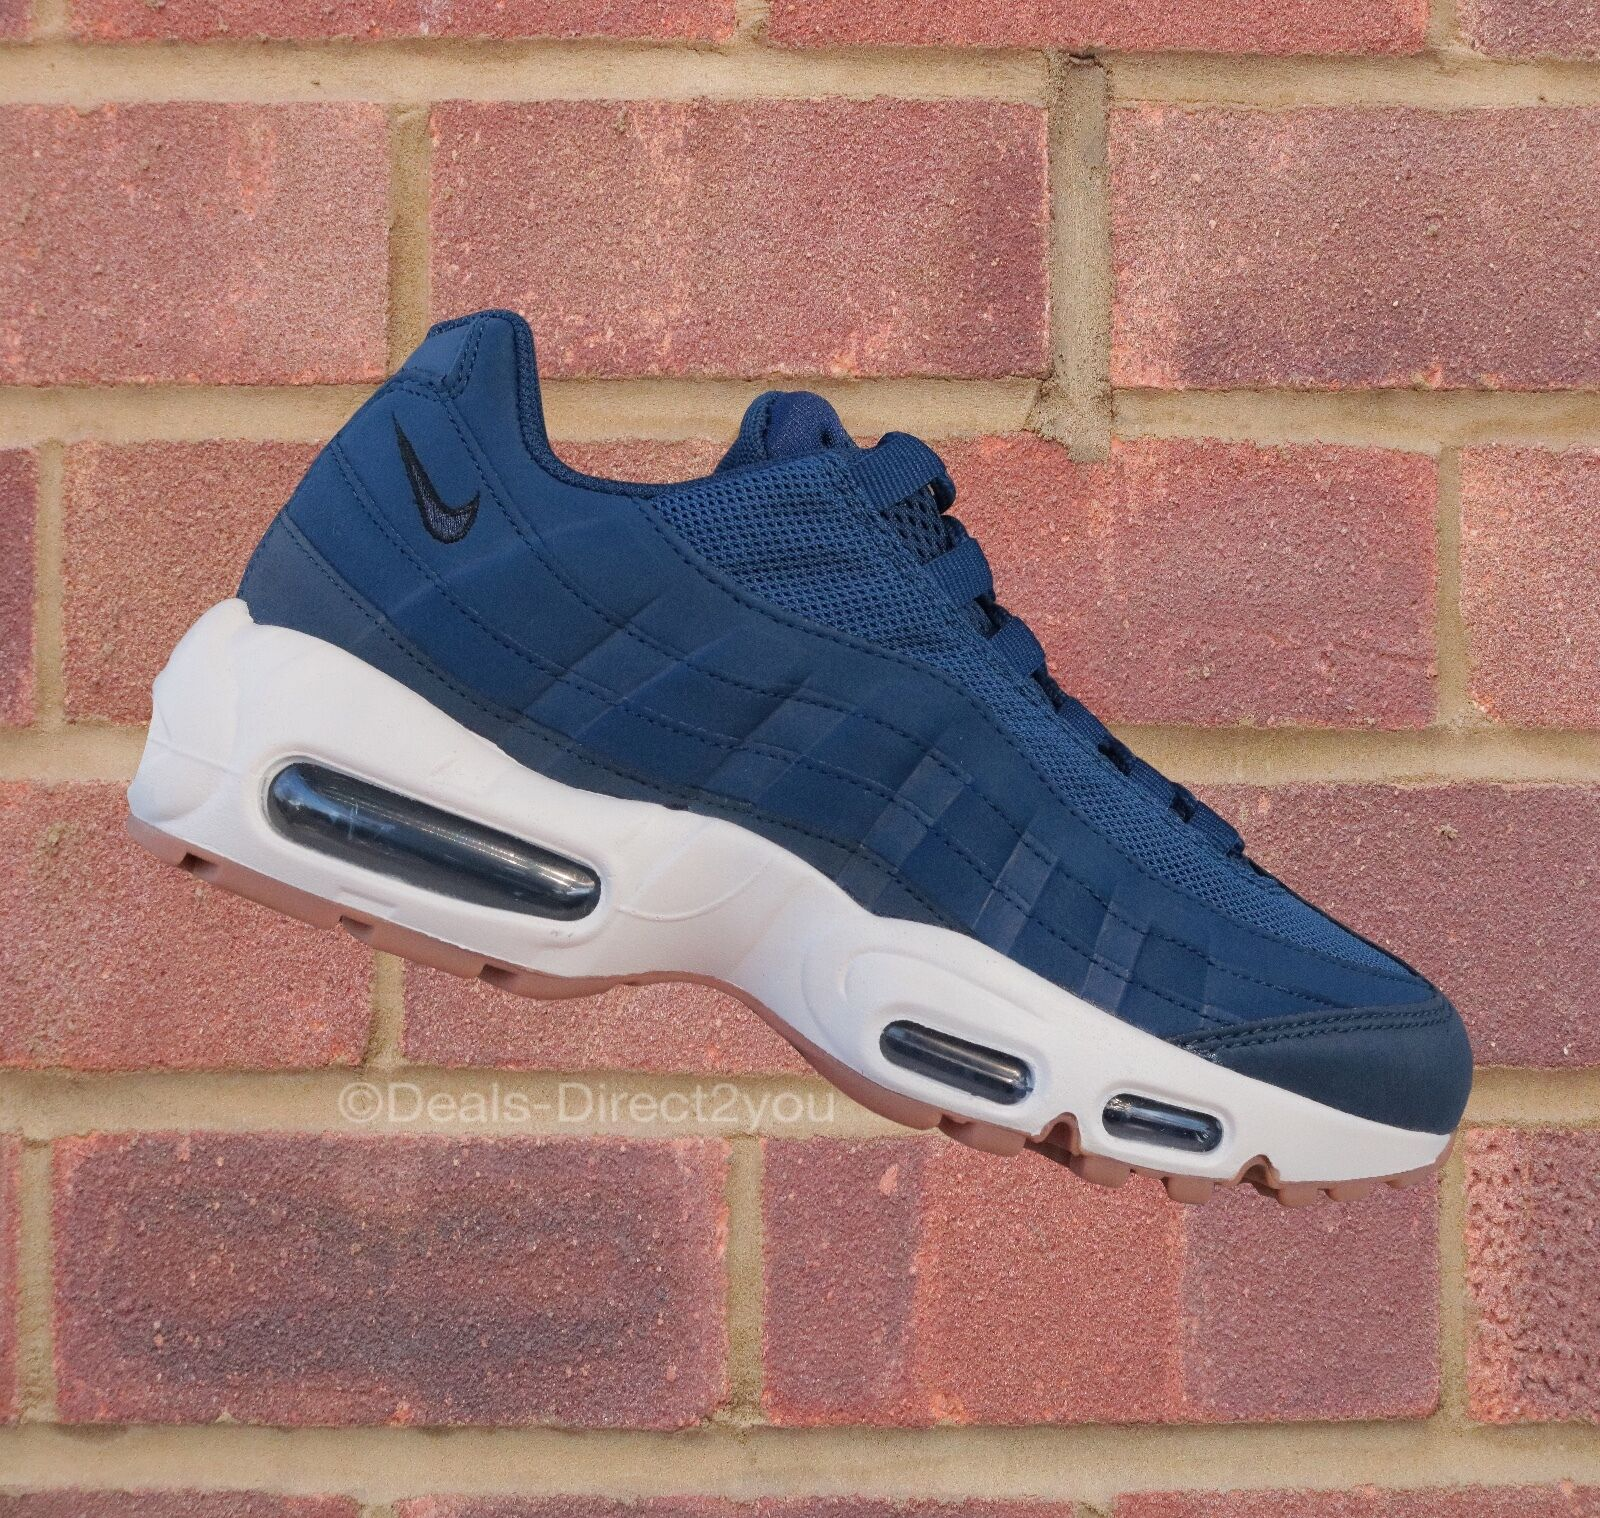 Nike Womens Bir Max 95 Coastal Blue / Navy Blue Size 4 5 6 UK NEW 307960 400